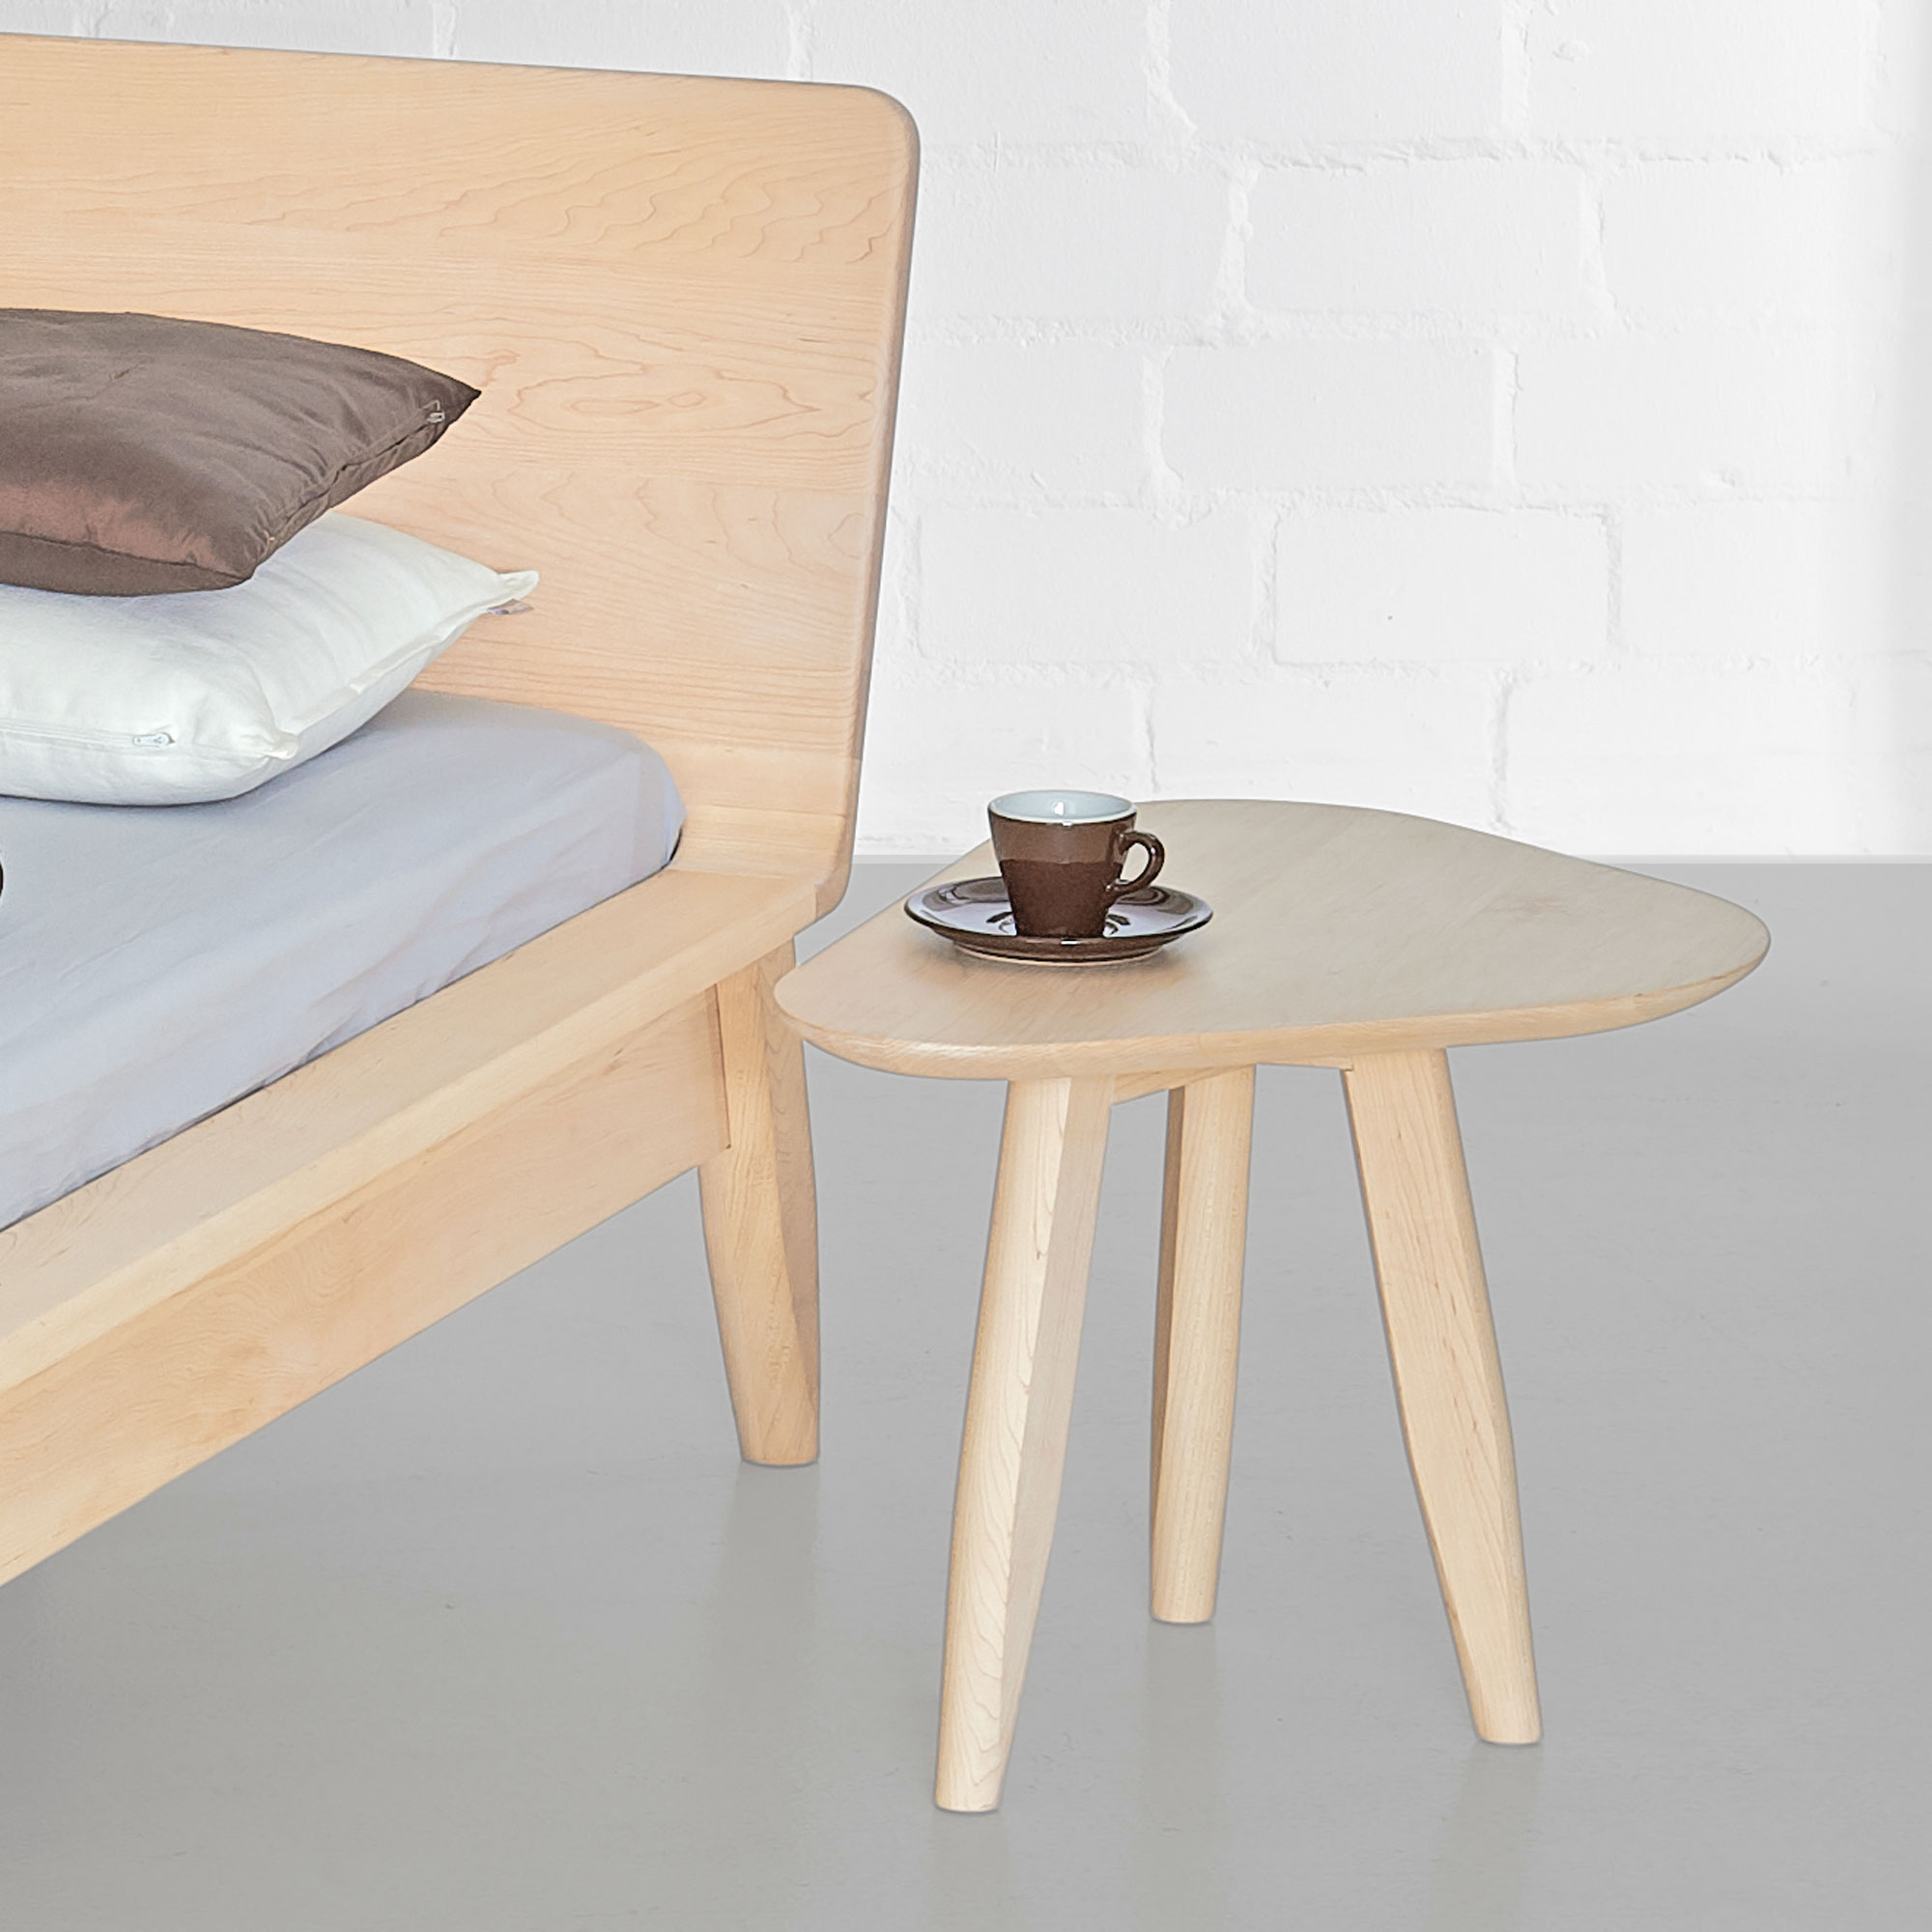 Design Side Table Night table AETAS SPACE cut custom made in solid wood by vitamin design